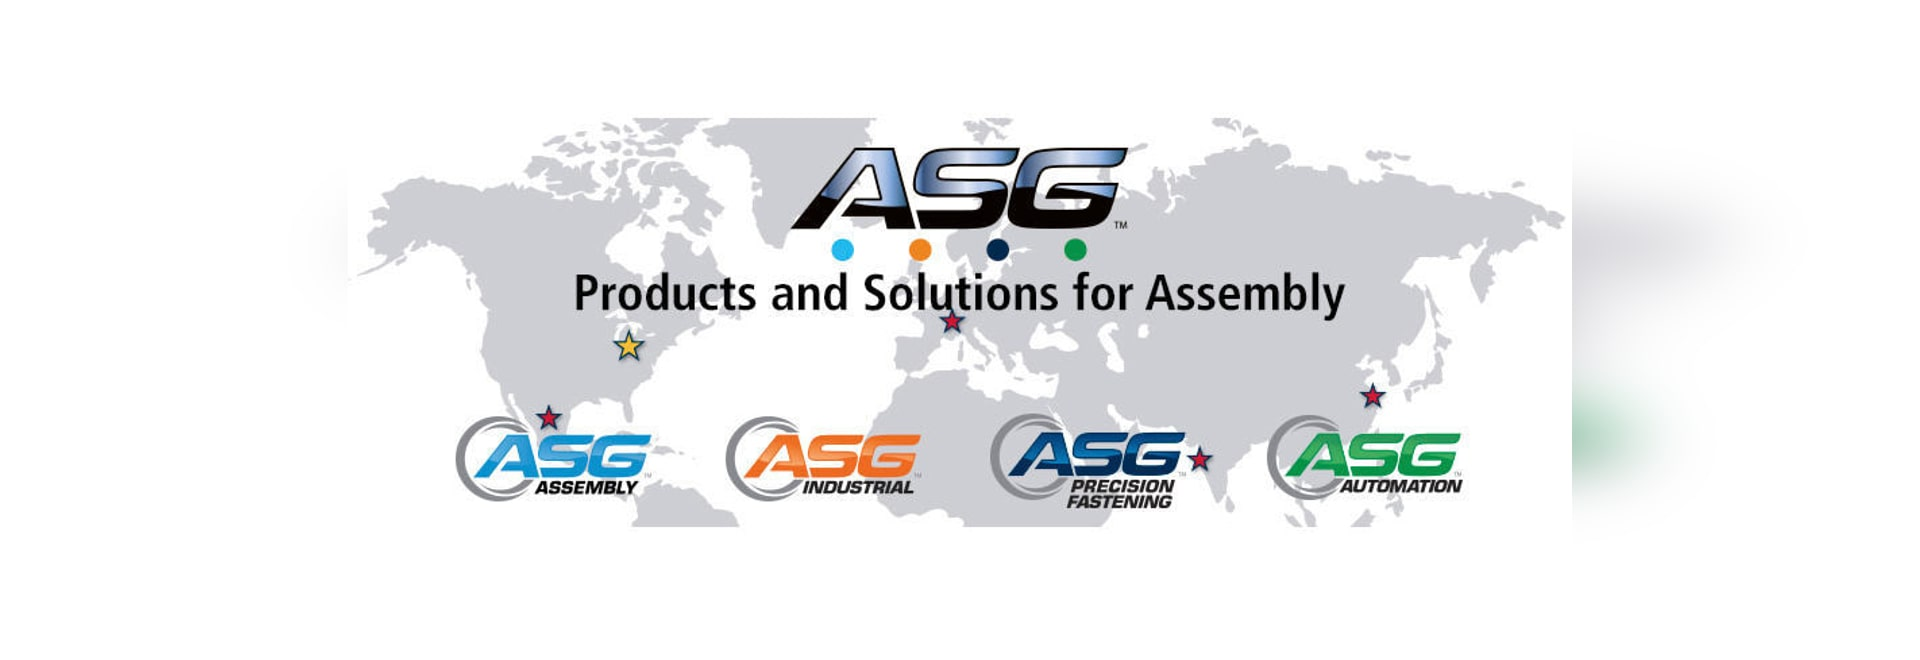 Charter Exhibitor, ASG, Returns to Assembly Show for the Fifth Year Running